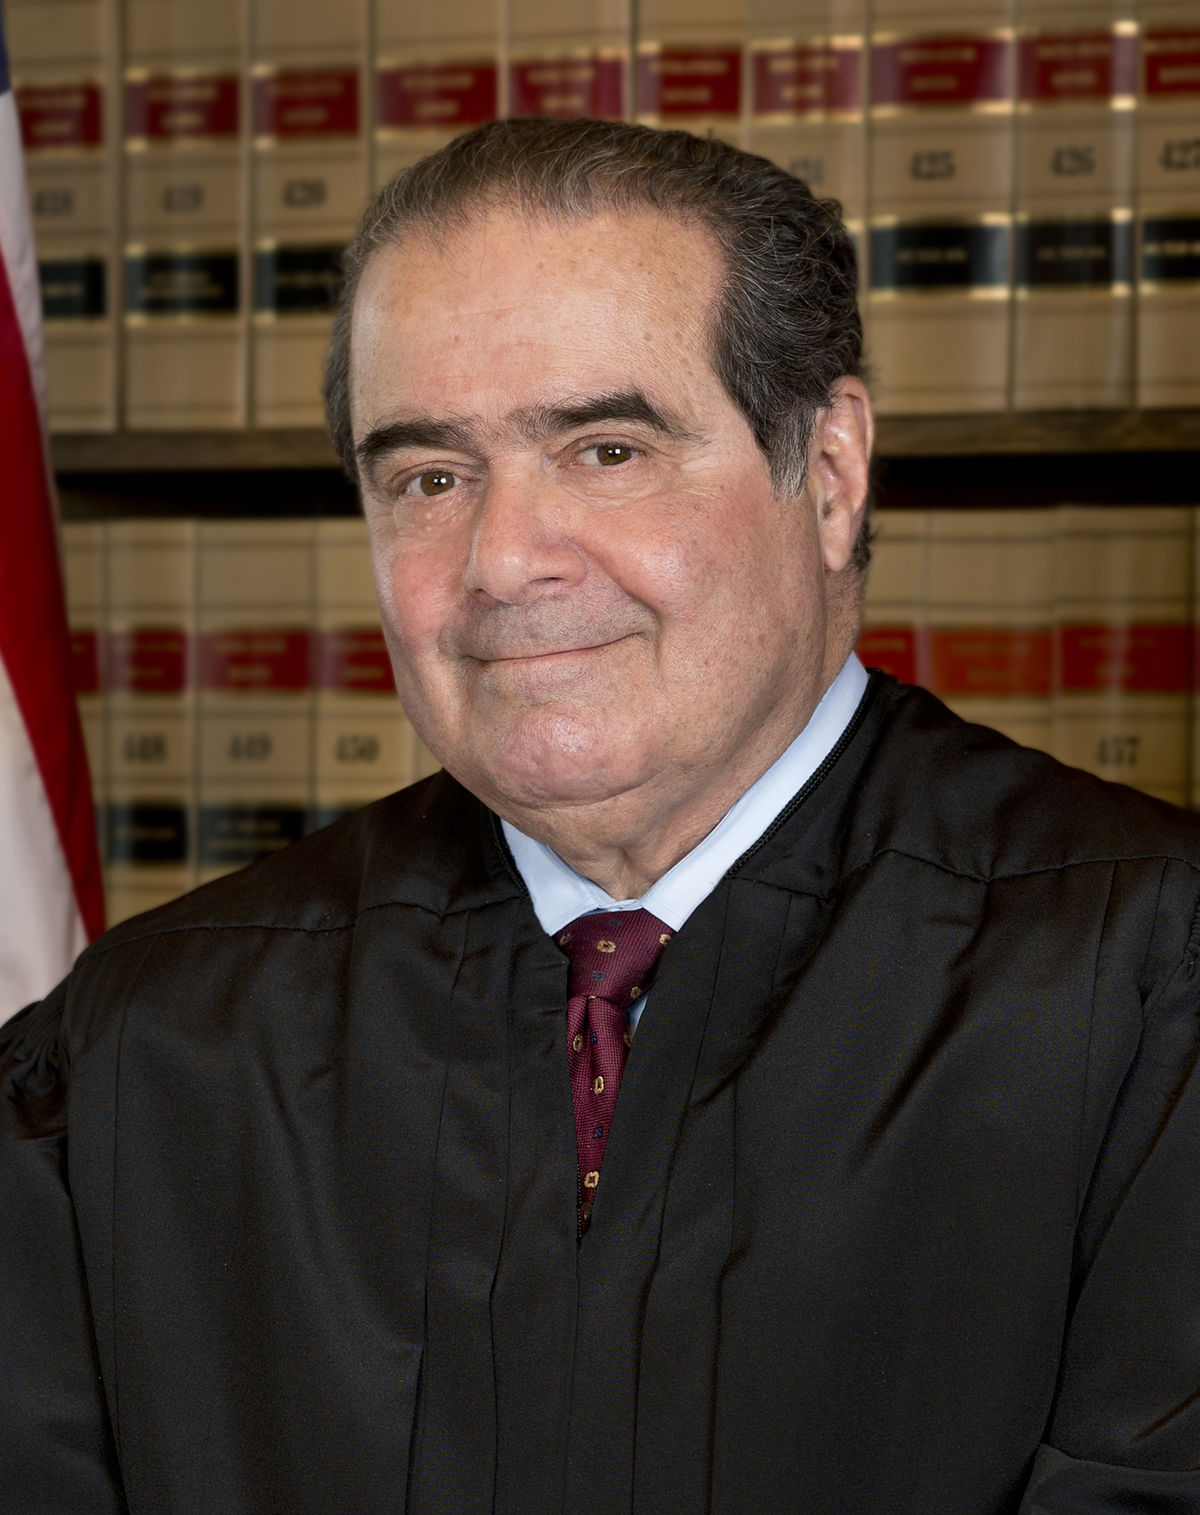 Antonin Scalia - Simple English Wikipedia, the free encyclopedia